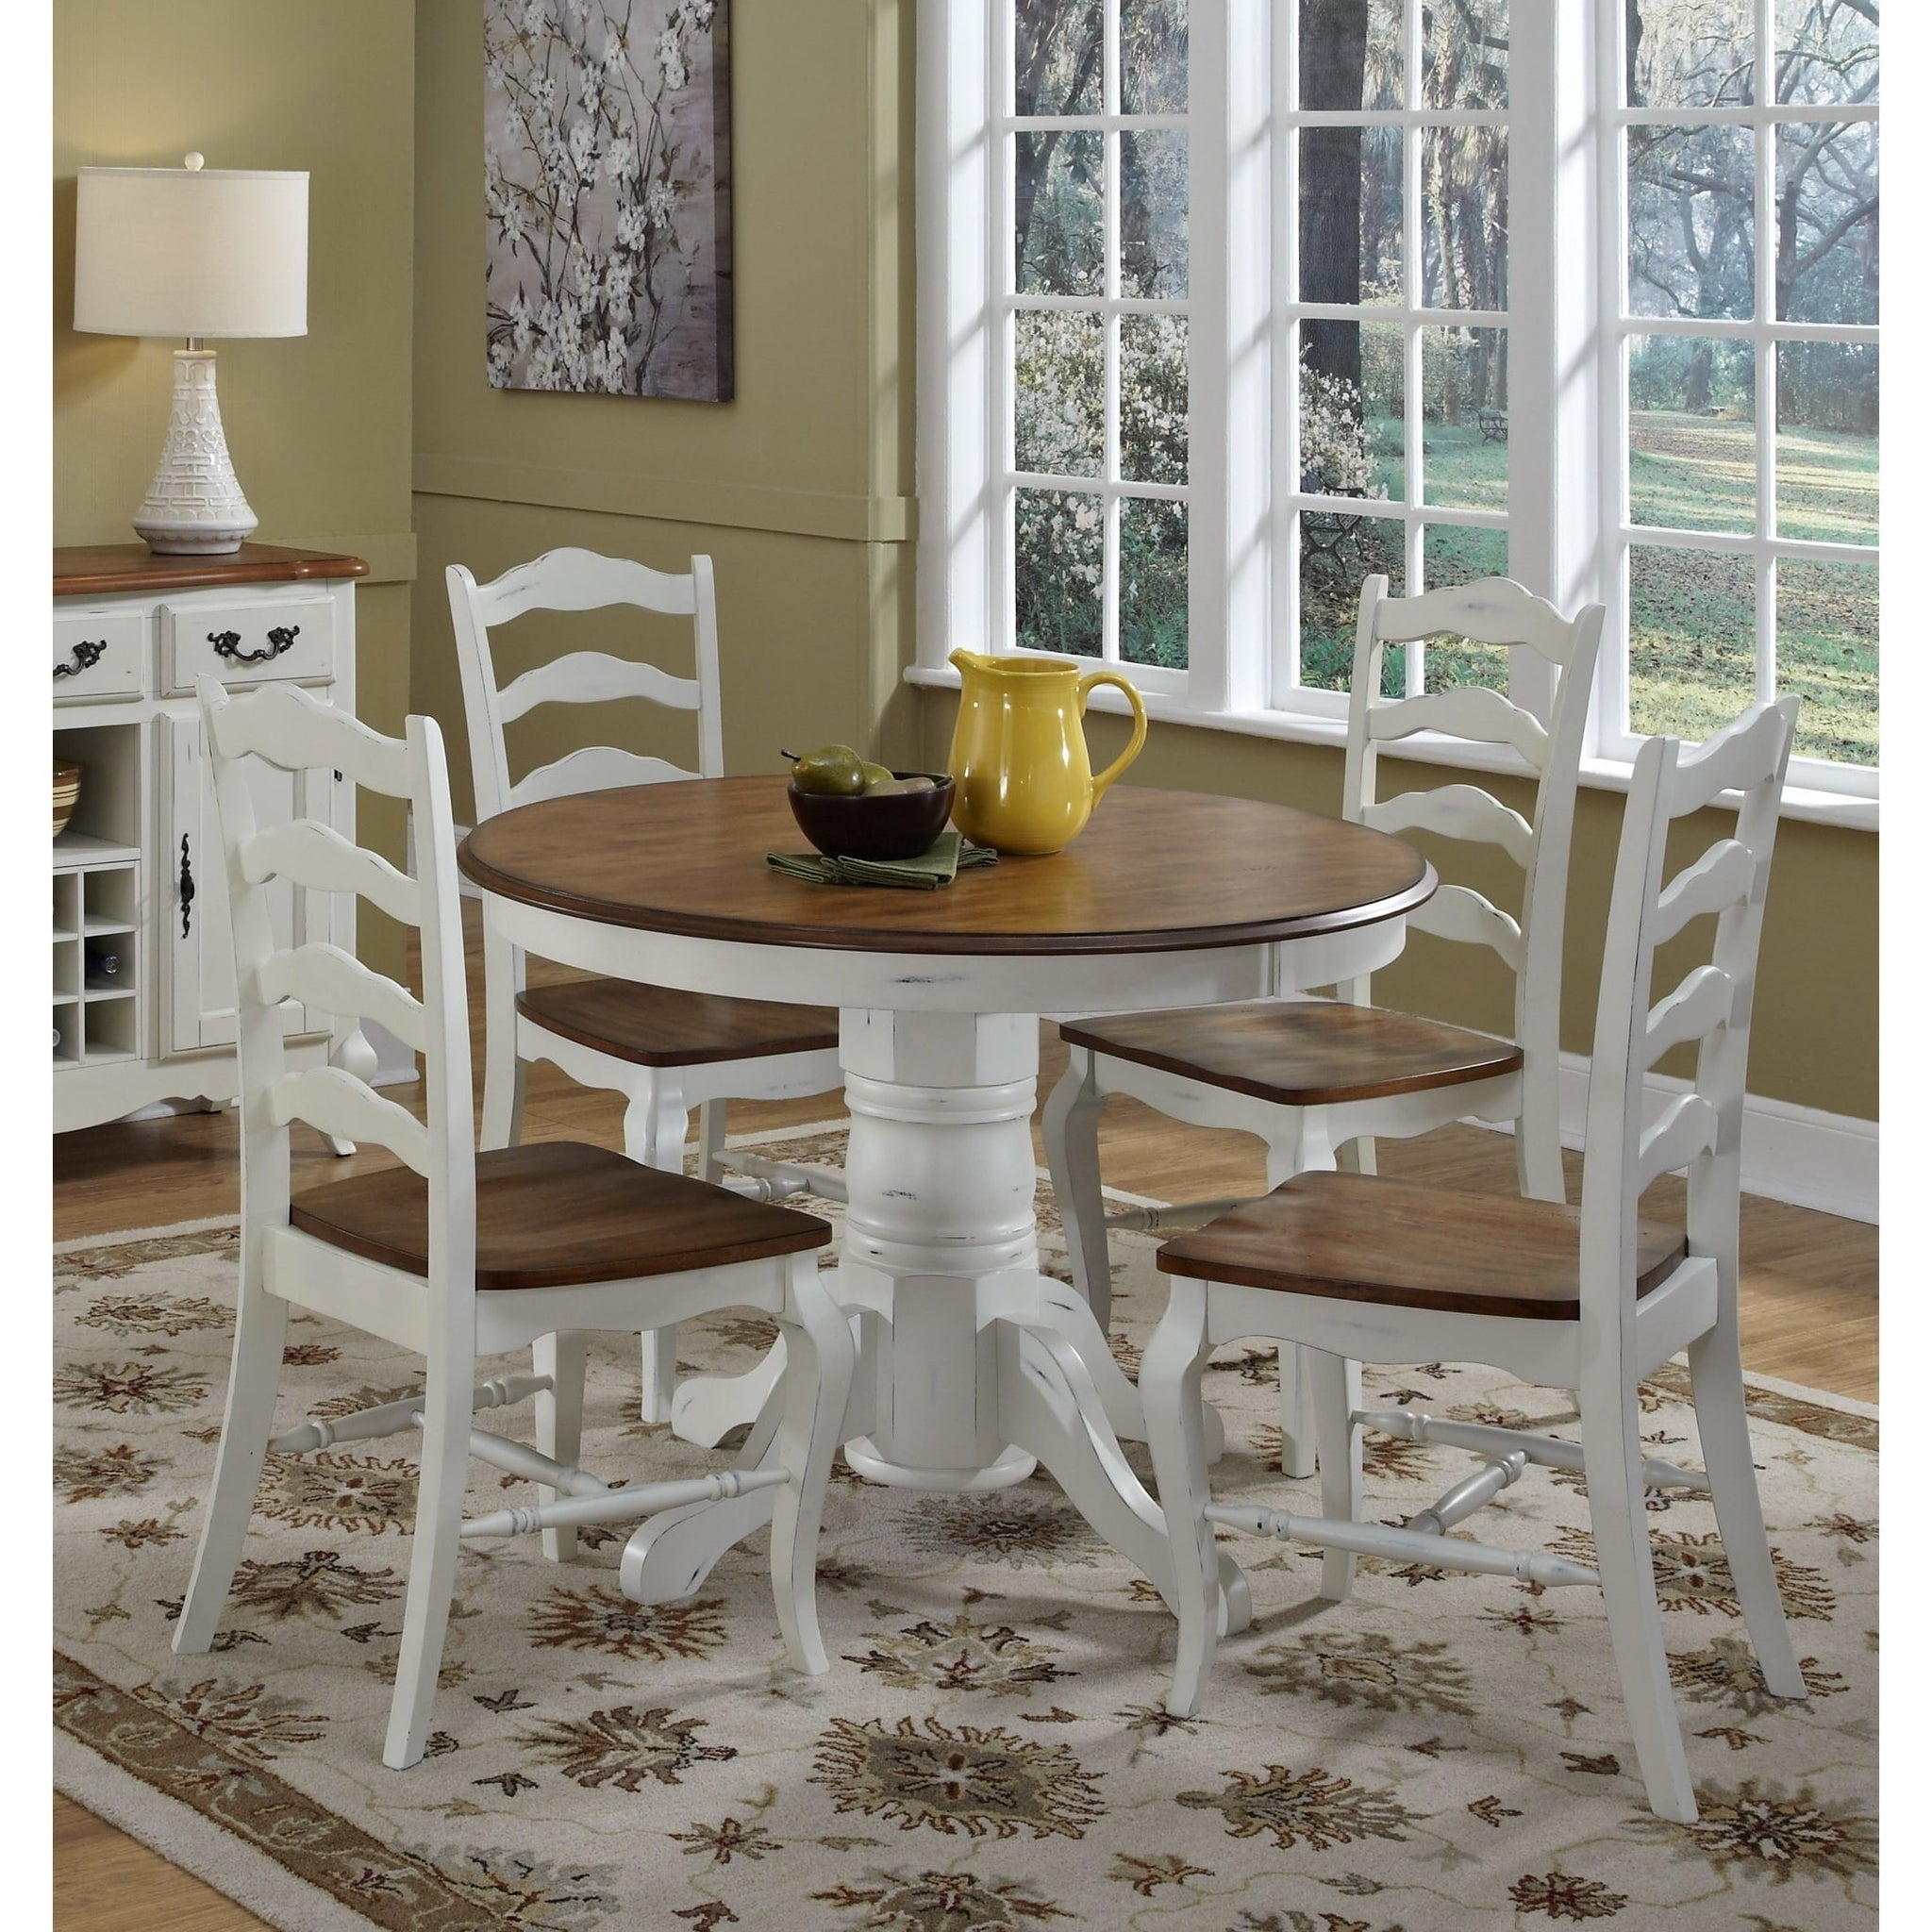 Traditional Countryside Dining Table